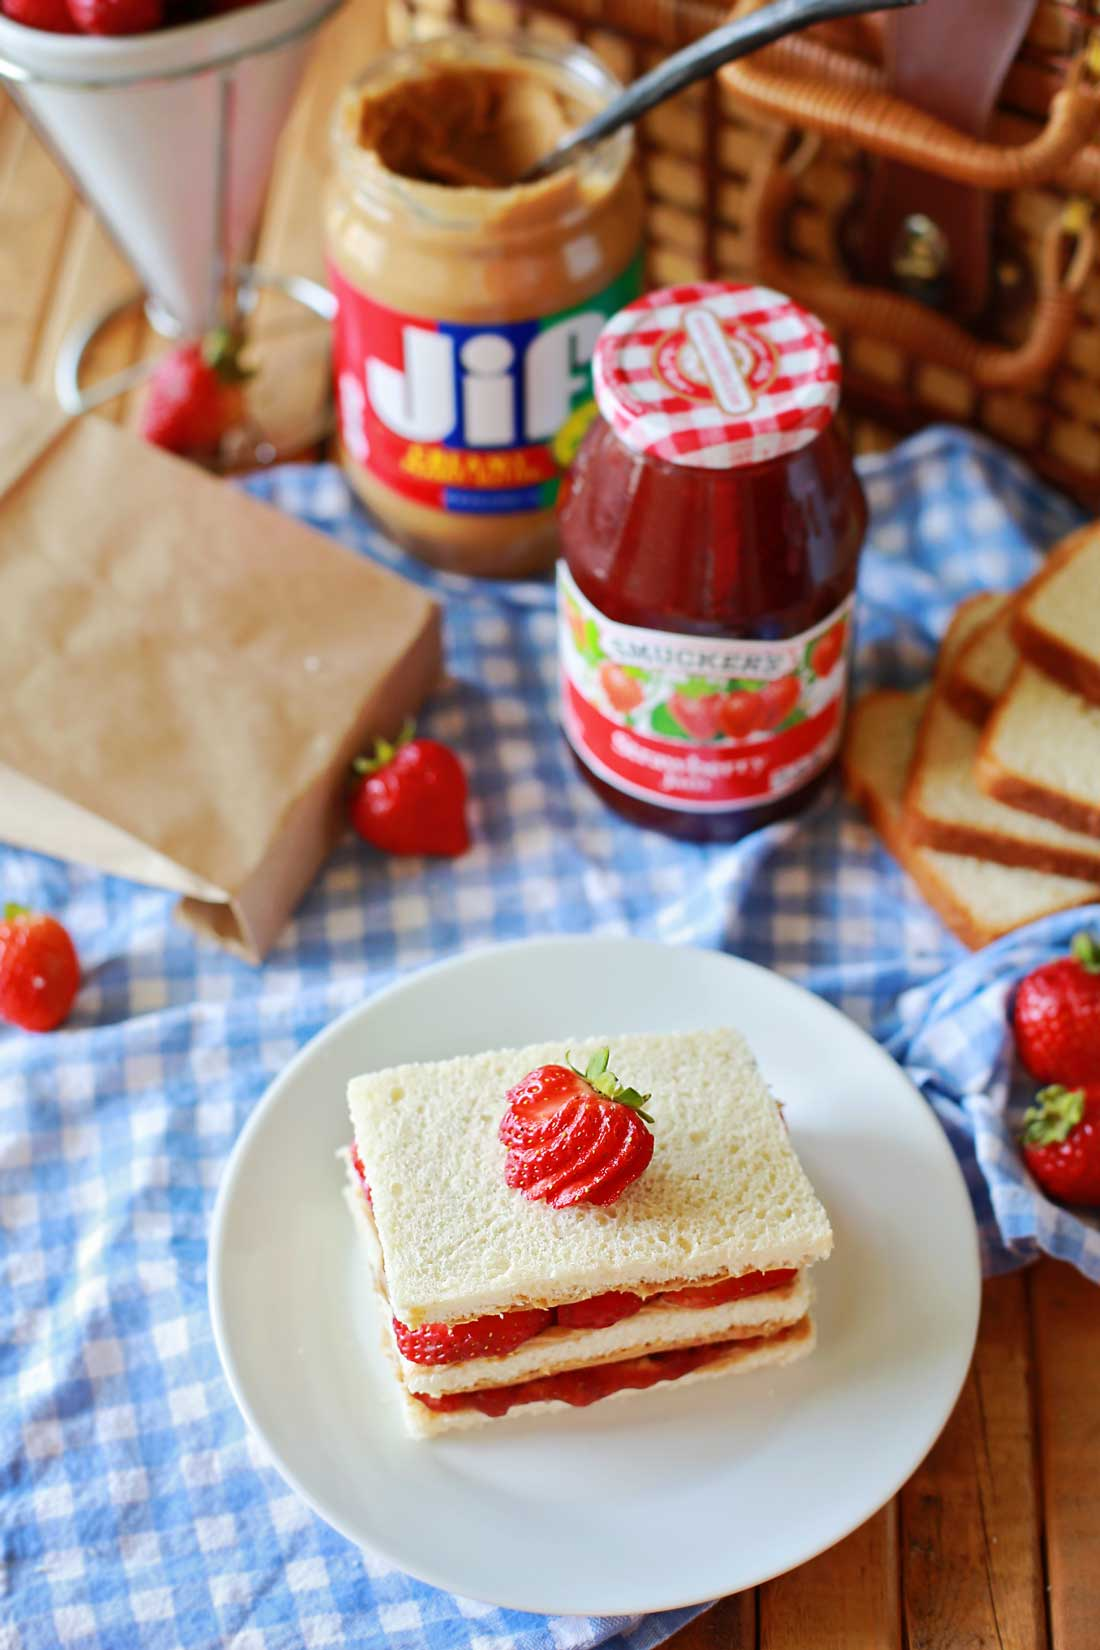 The ultimate PB&J sandwich! Super yummy peanut and jelly sandwich recipe by Flirting with Flavor.